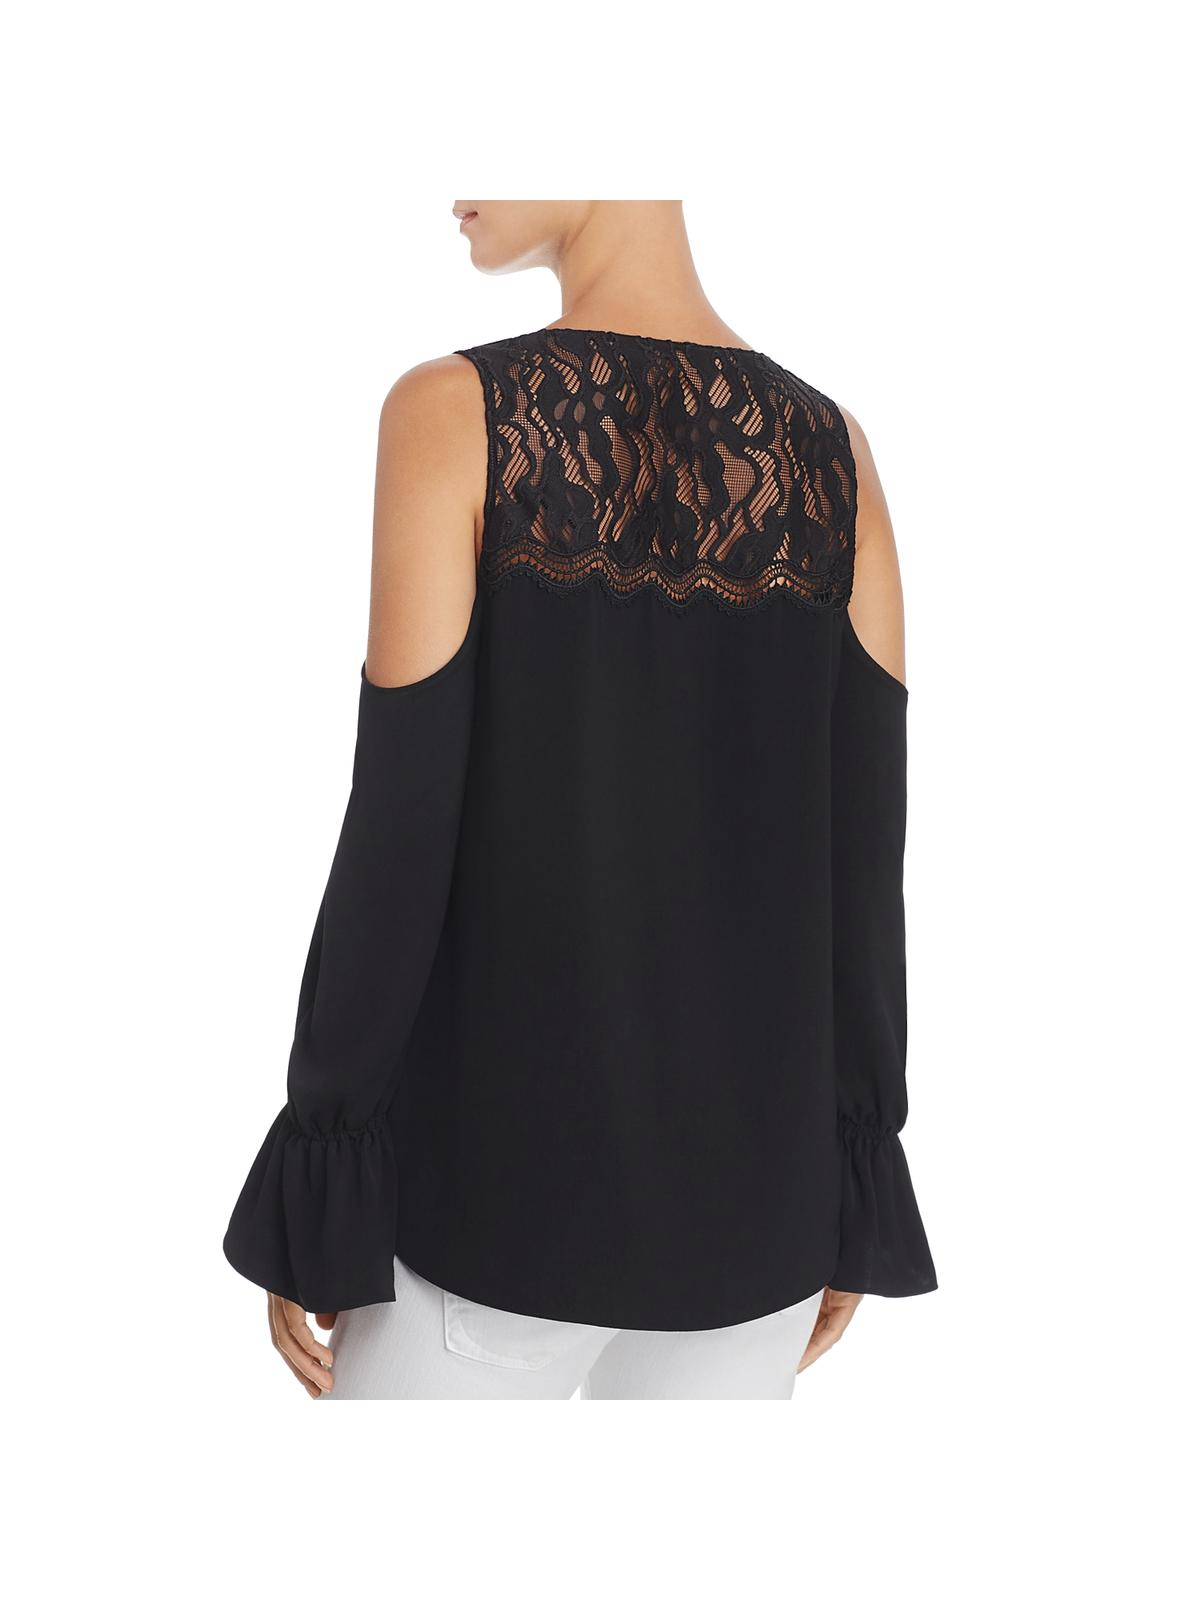 0522f02bcd4e1 Ramy Brook - Ramy Brook Womens Abigail Lace Cold Shoulder Blouse -  Walmart.com